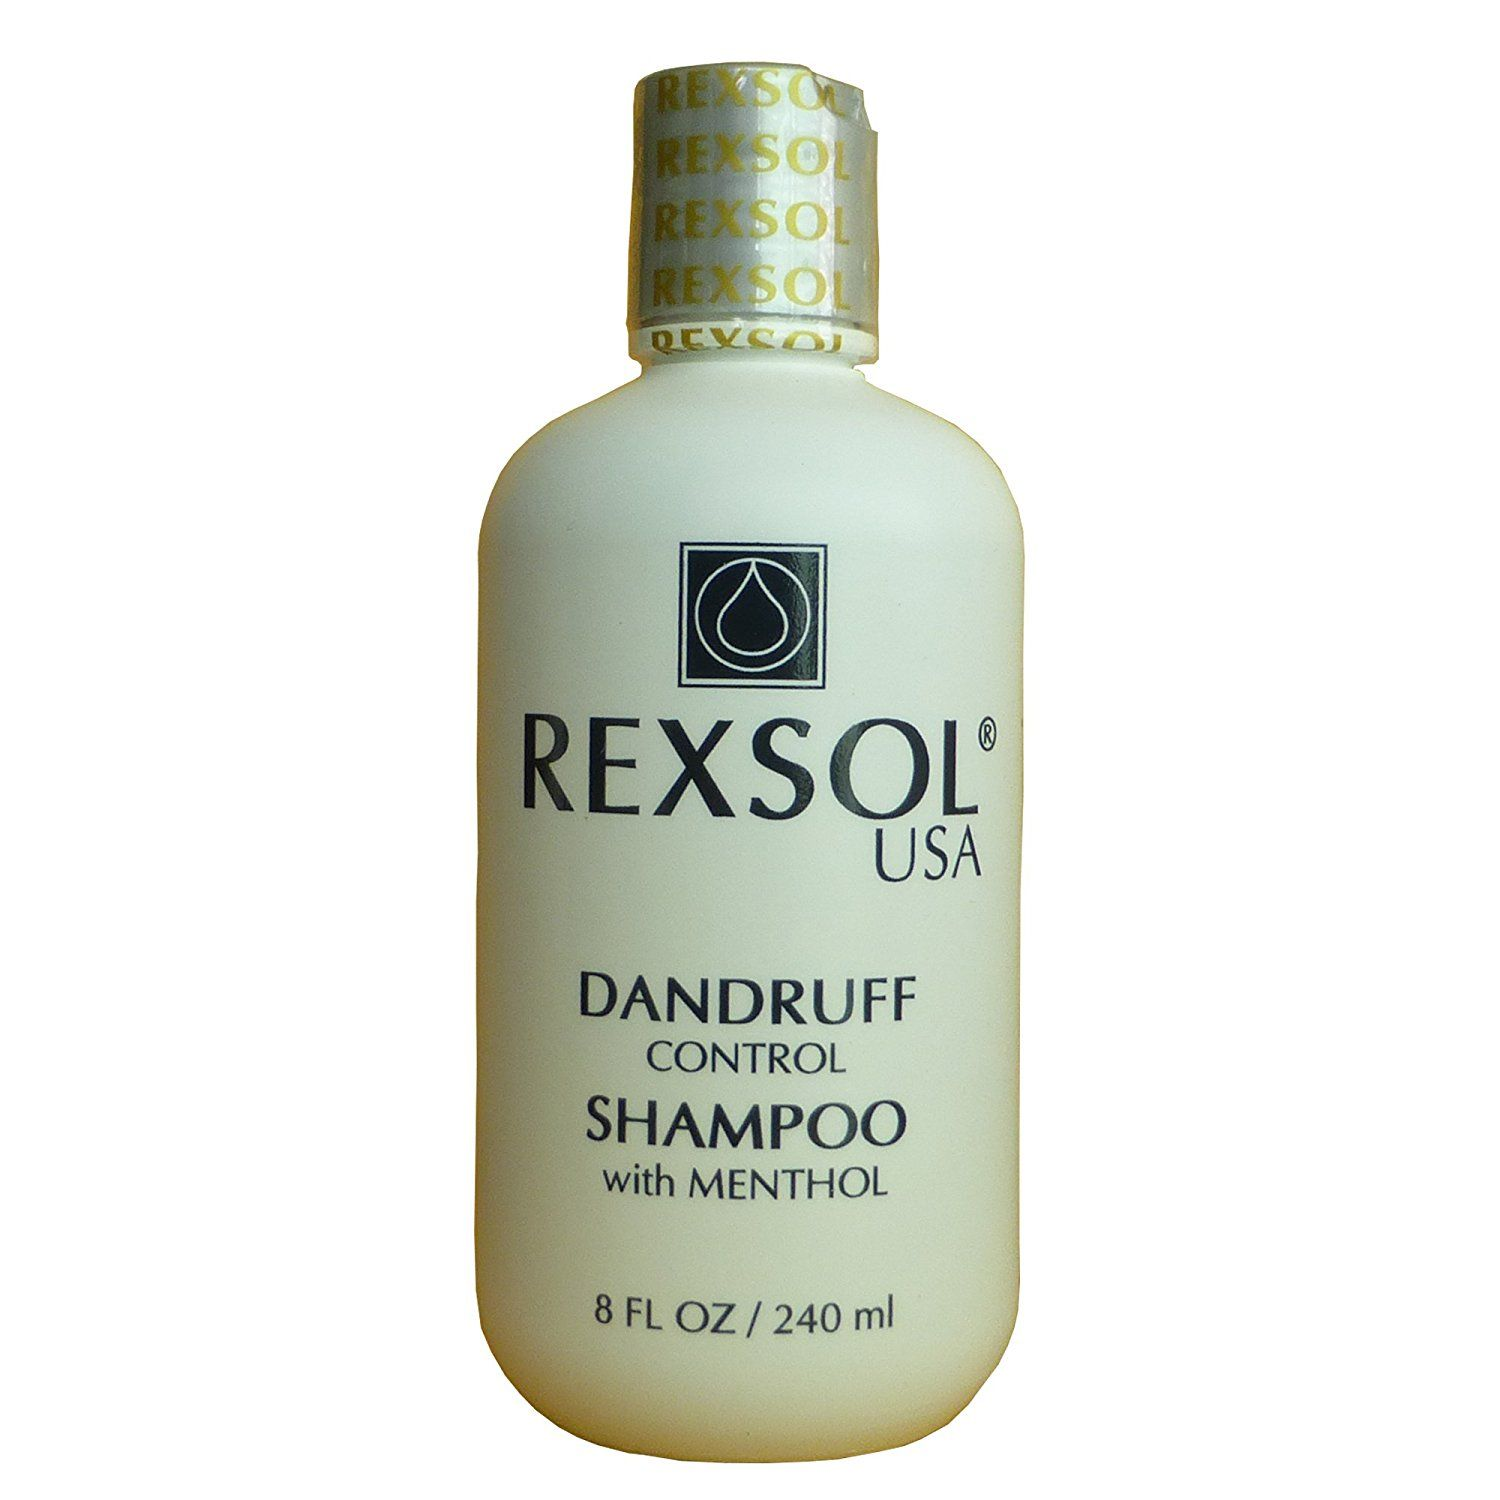 REXSOL Dandruff Control SHAMPOO with MENTHOL ** Check out